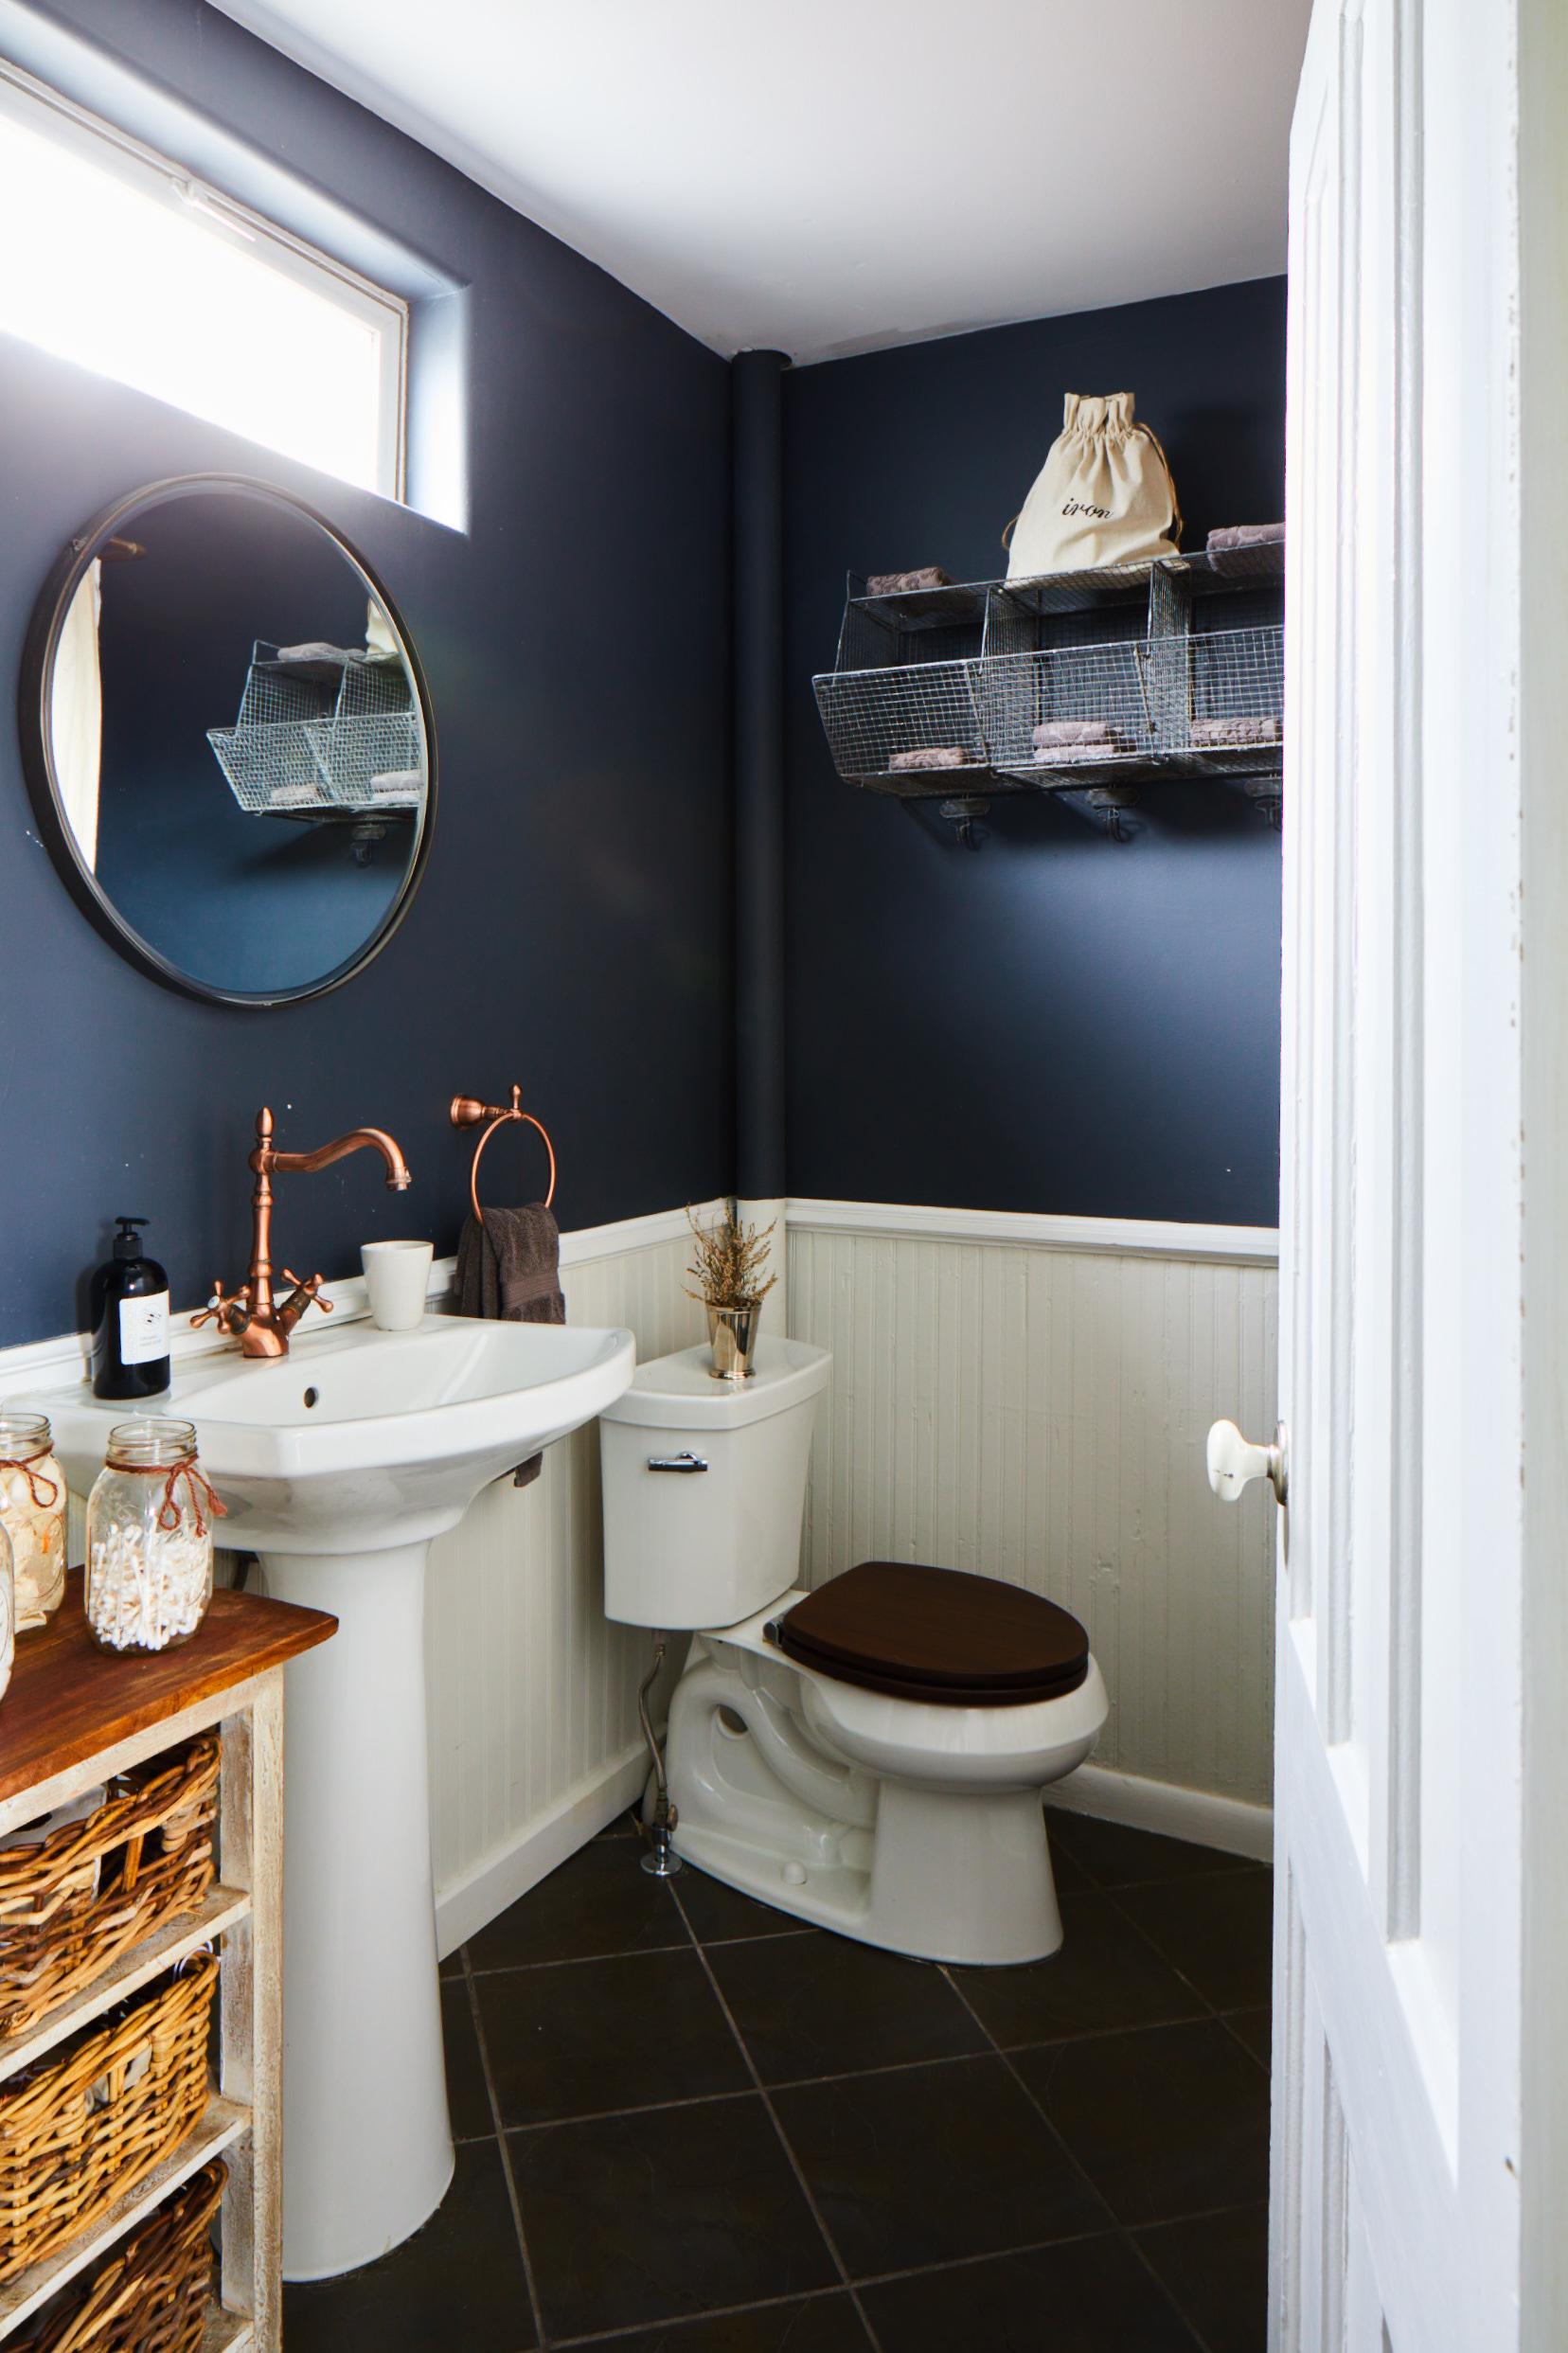 The Kemp bathroom with pedestal sink, toilet and navy blue walls with white wainscoting.